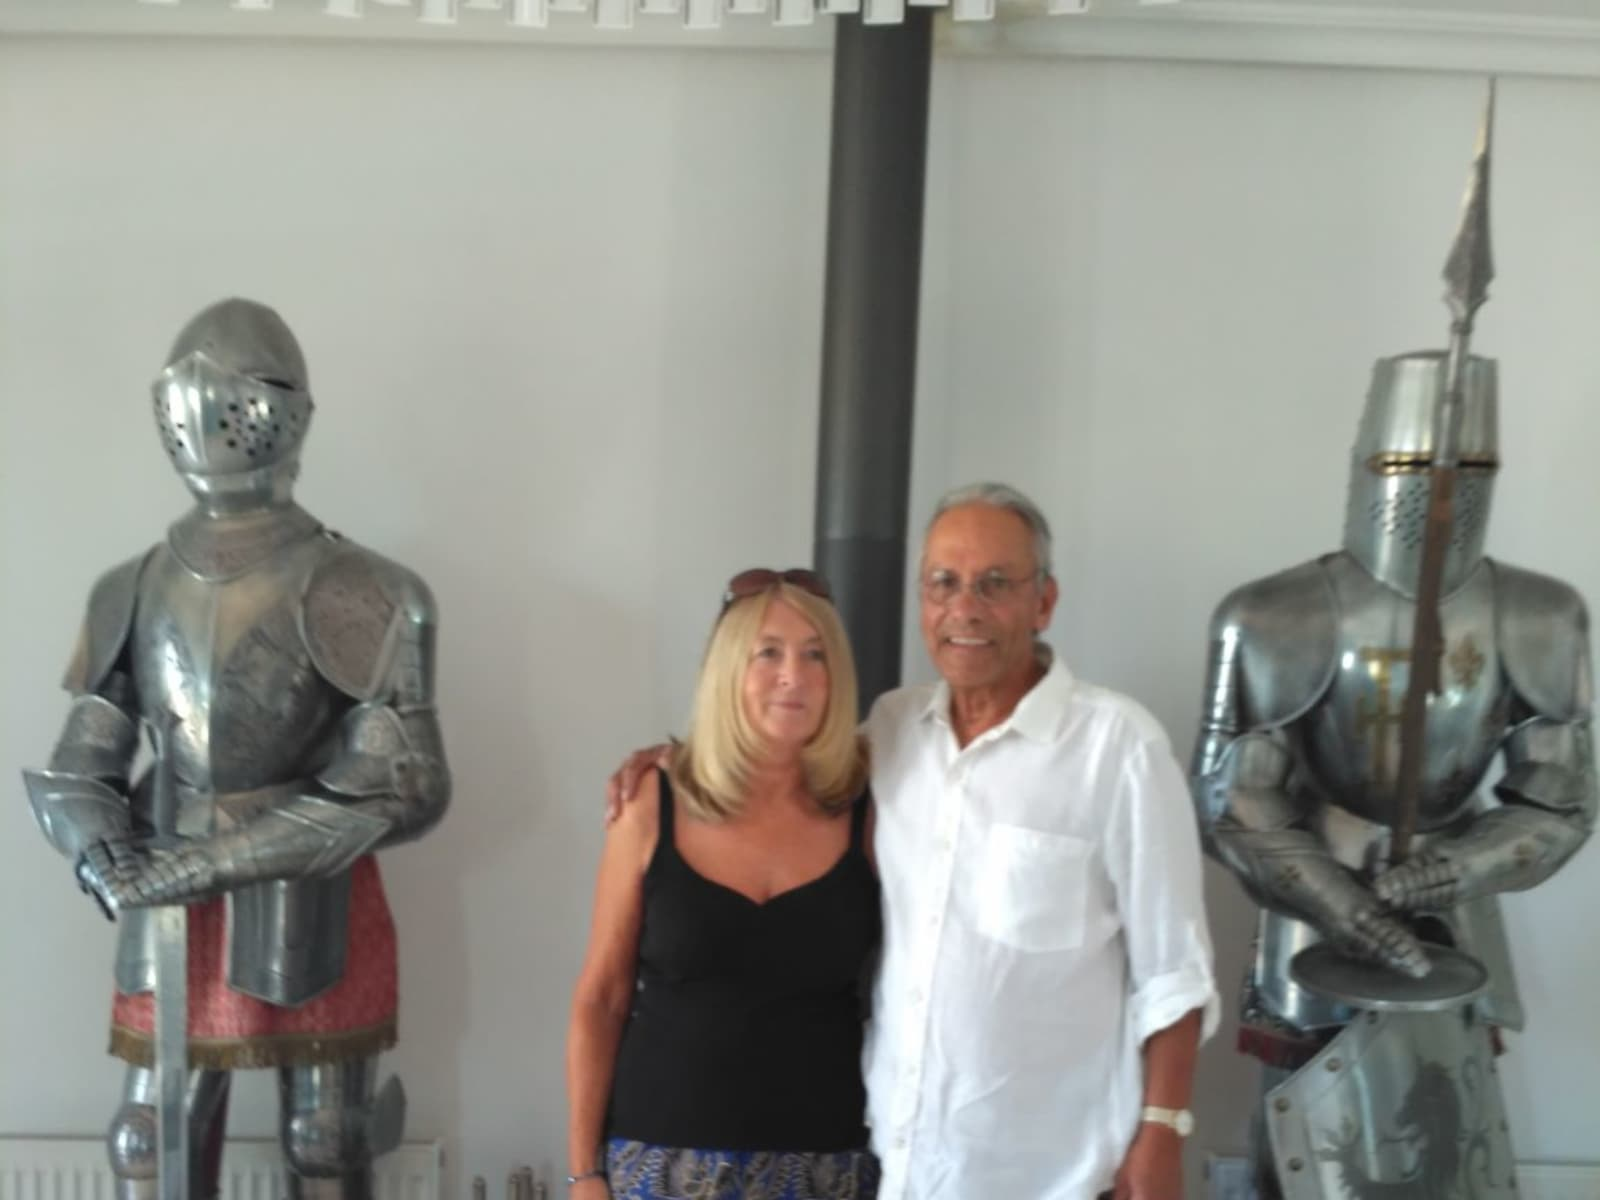 Robert & June from Guardamar del Segura, Spain